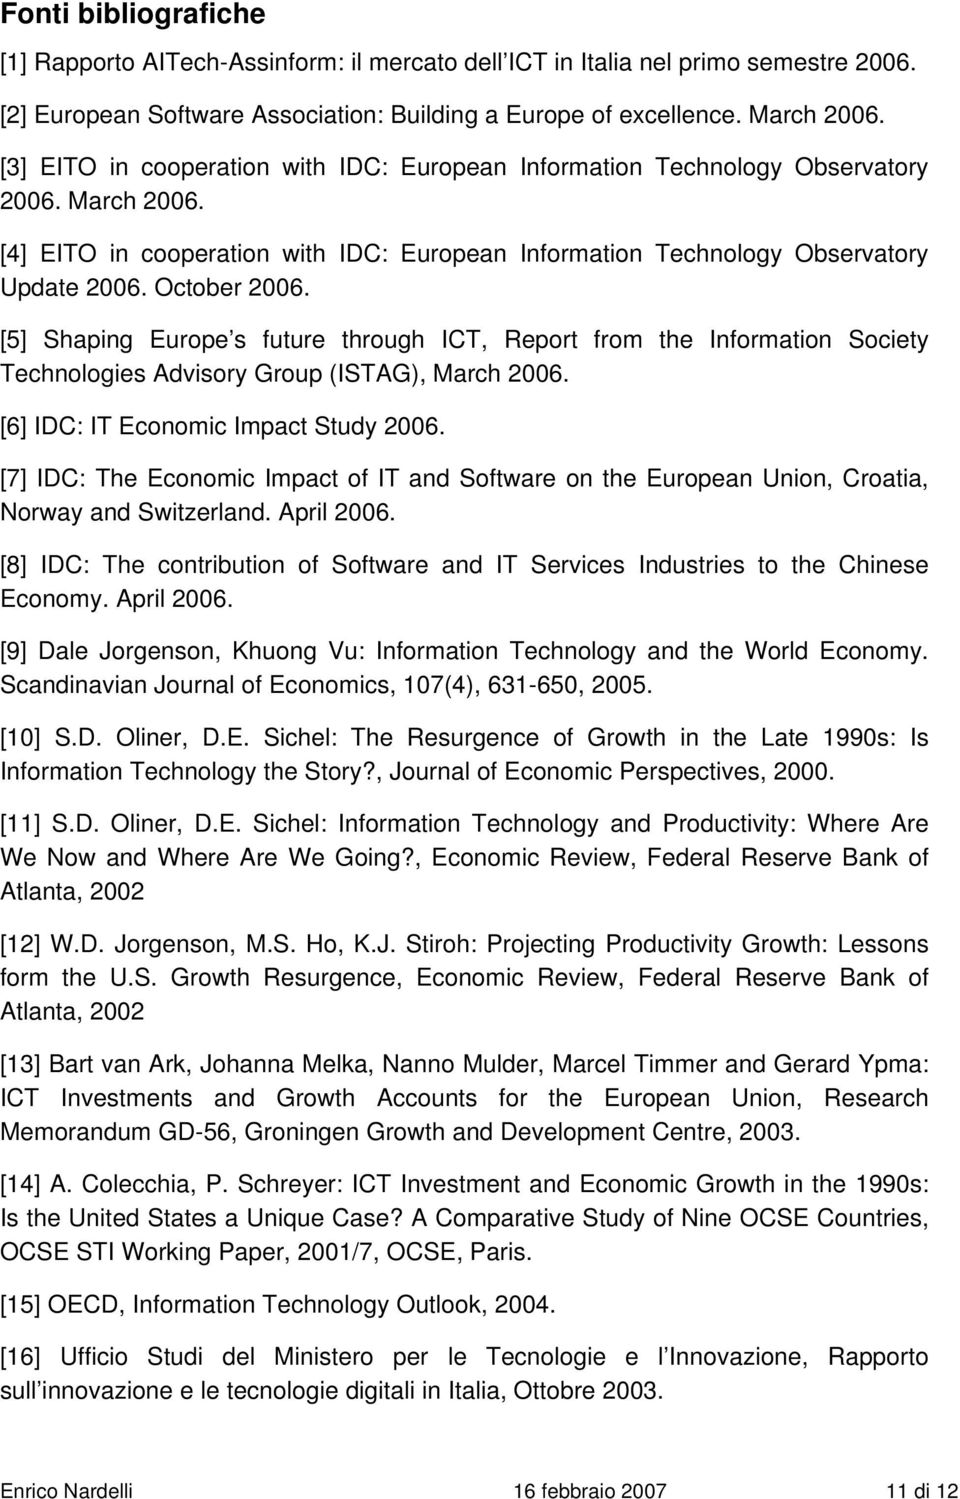 [5] Shaping Europe s future through ICT, Report from the Information Society Technologies Advisory Group (ISTAG), March 2006. [6] IDC: IT Economic Impact Study 2006.